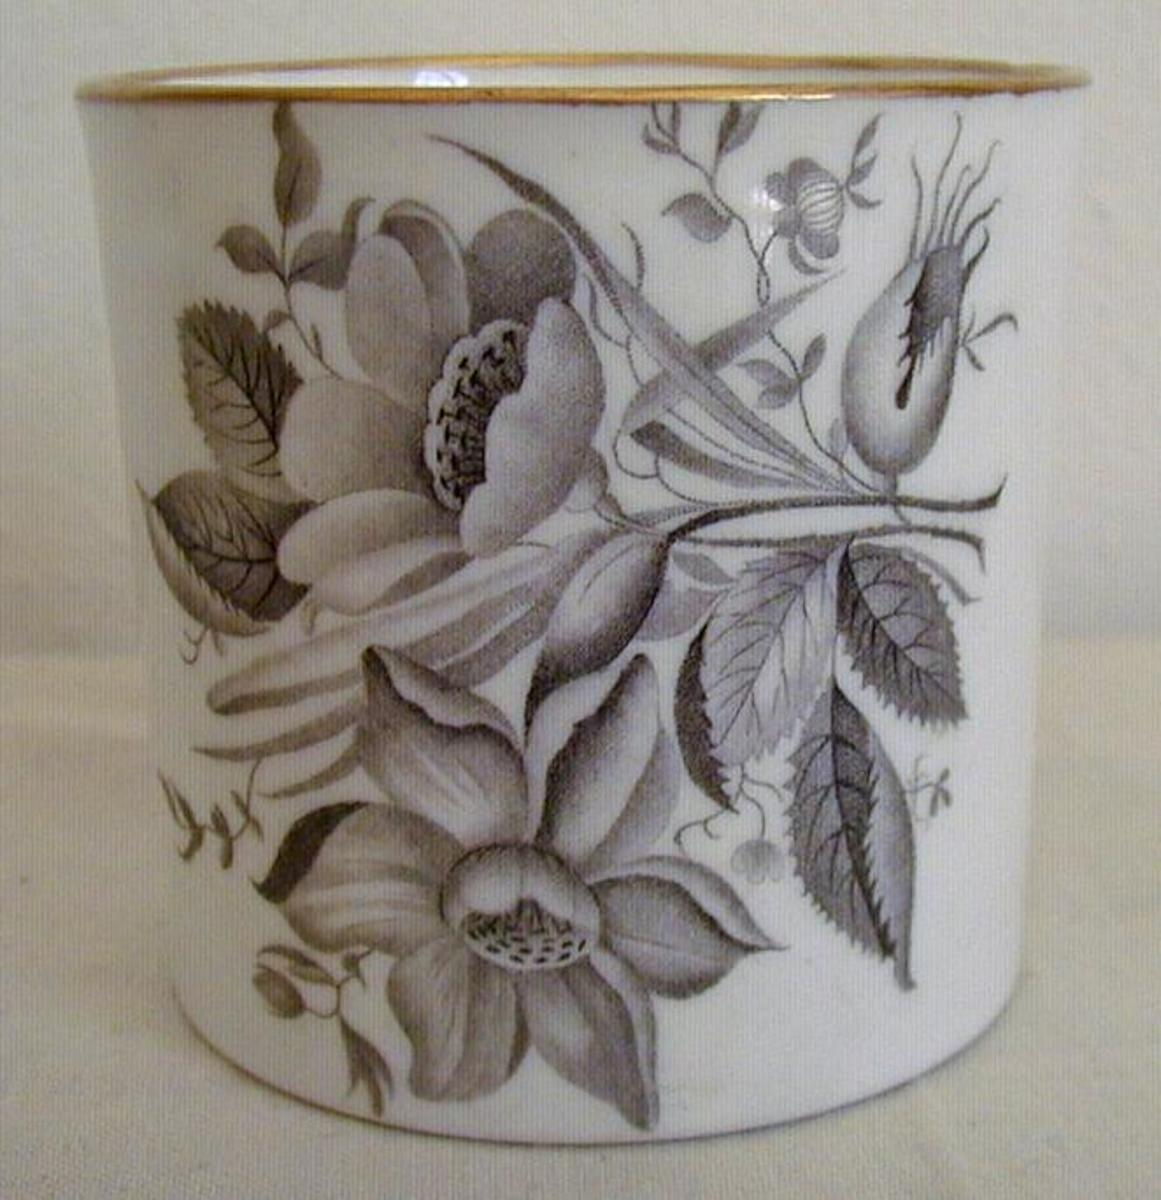 Spode Can Bat Printed c. 1810